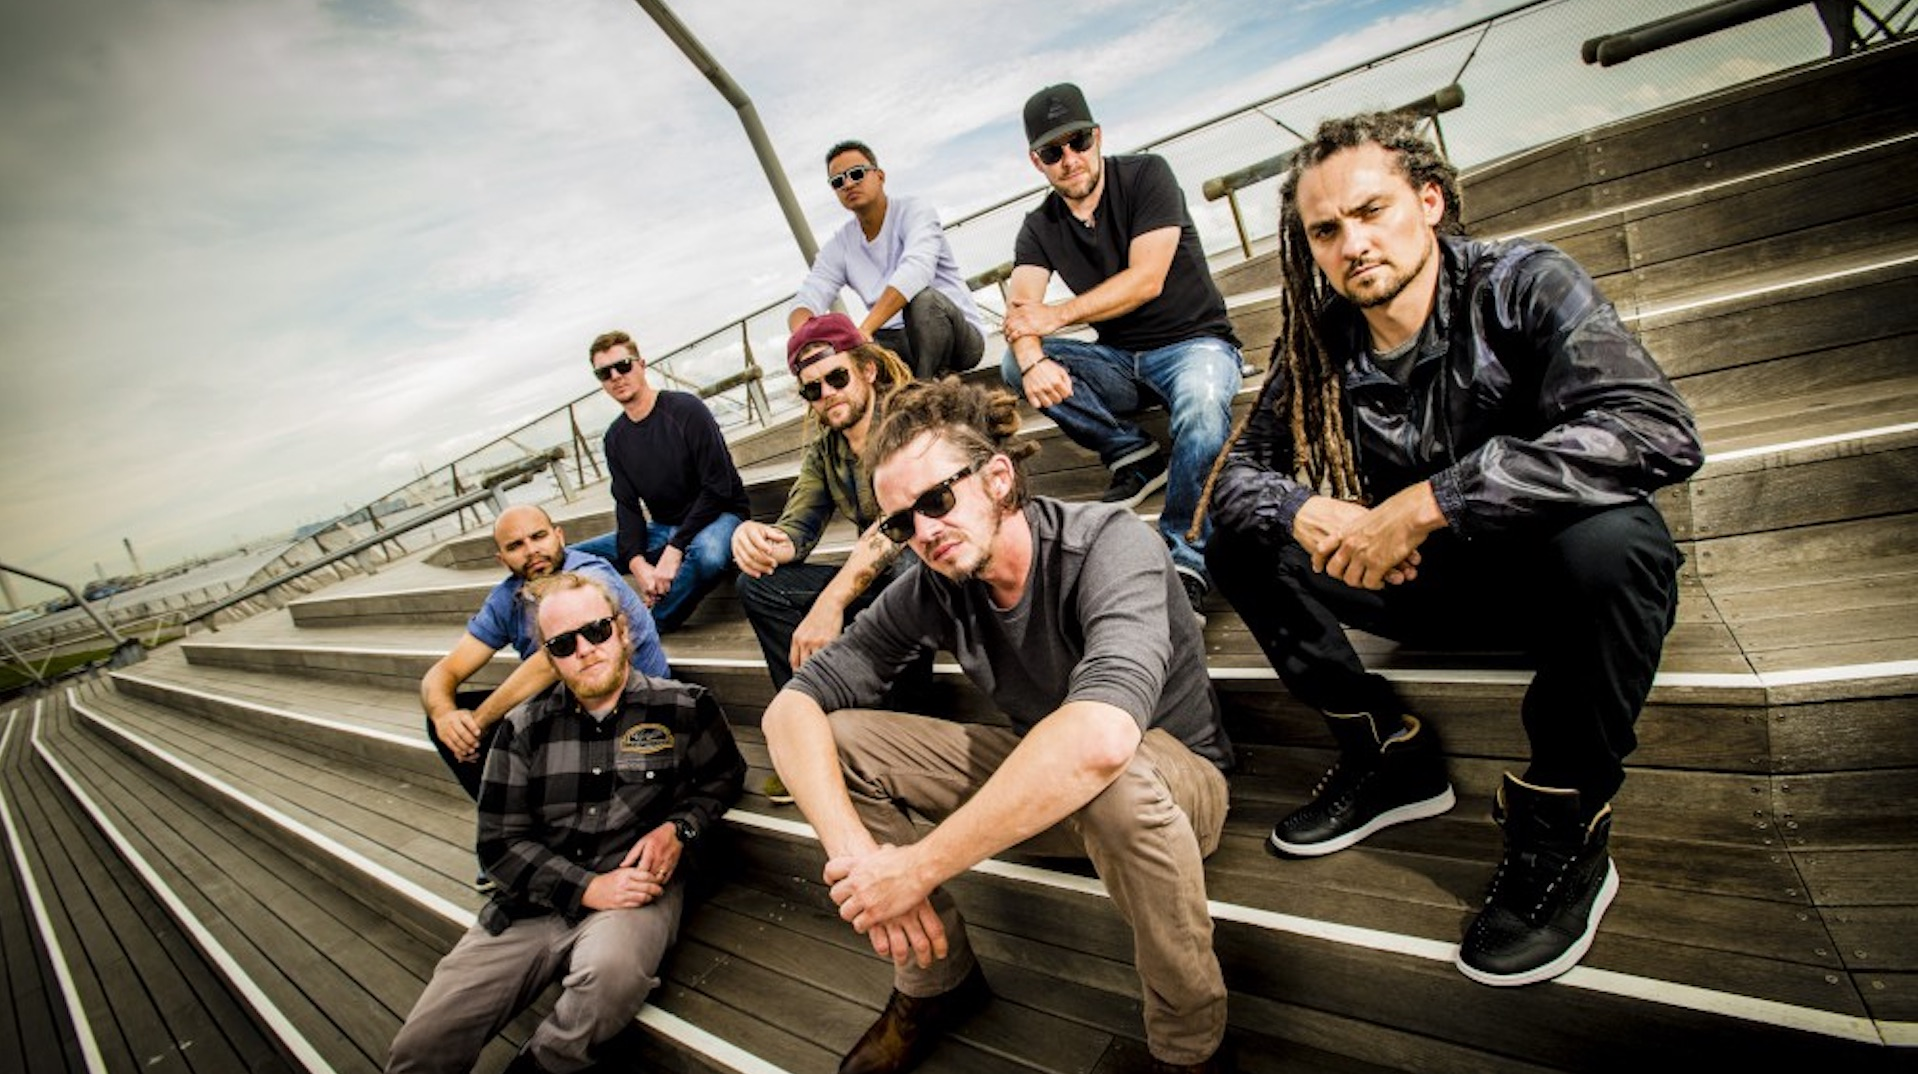 Top 5 Live: SOJA's Concert Bucket List For 2018